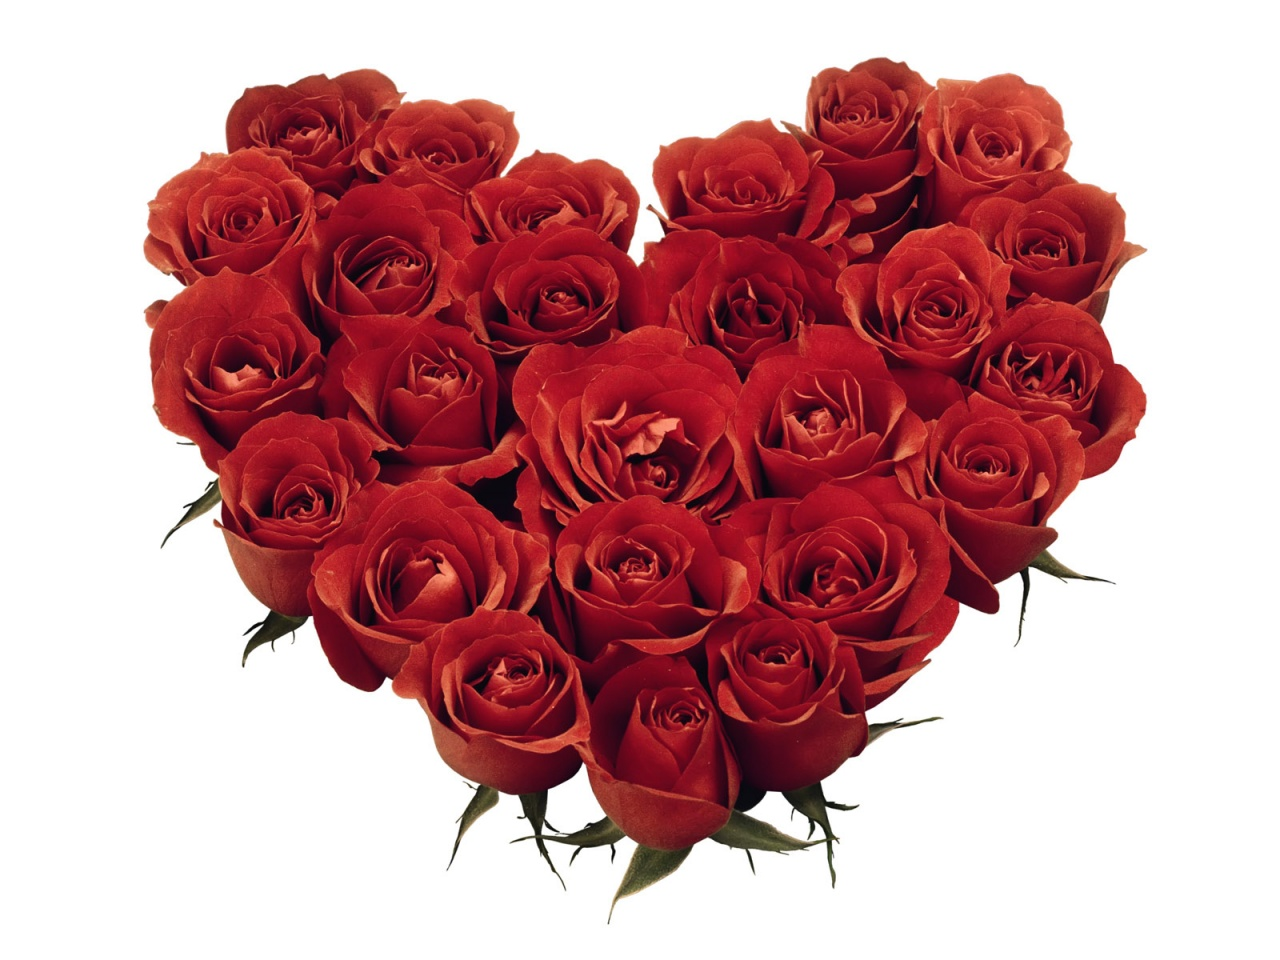 heart and roses background - photo #6